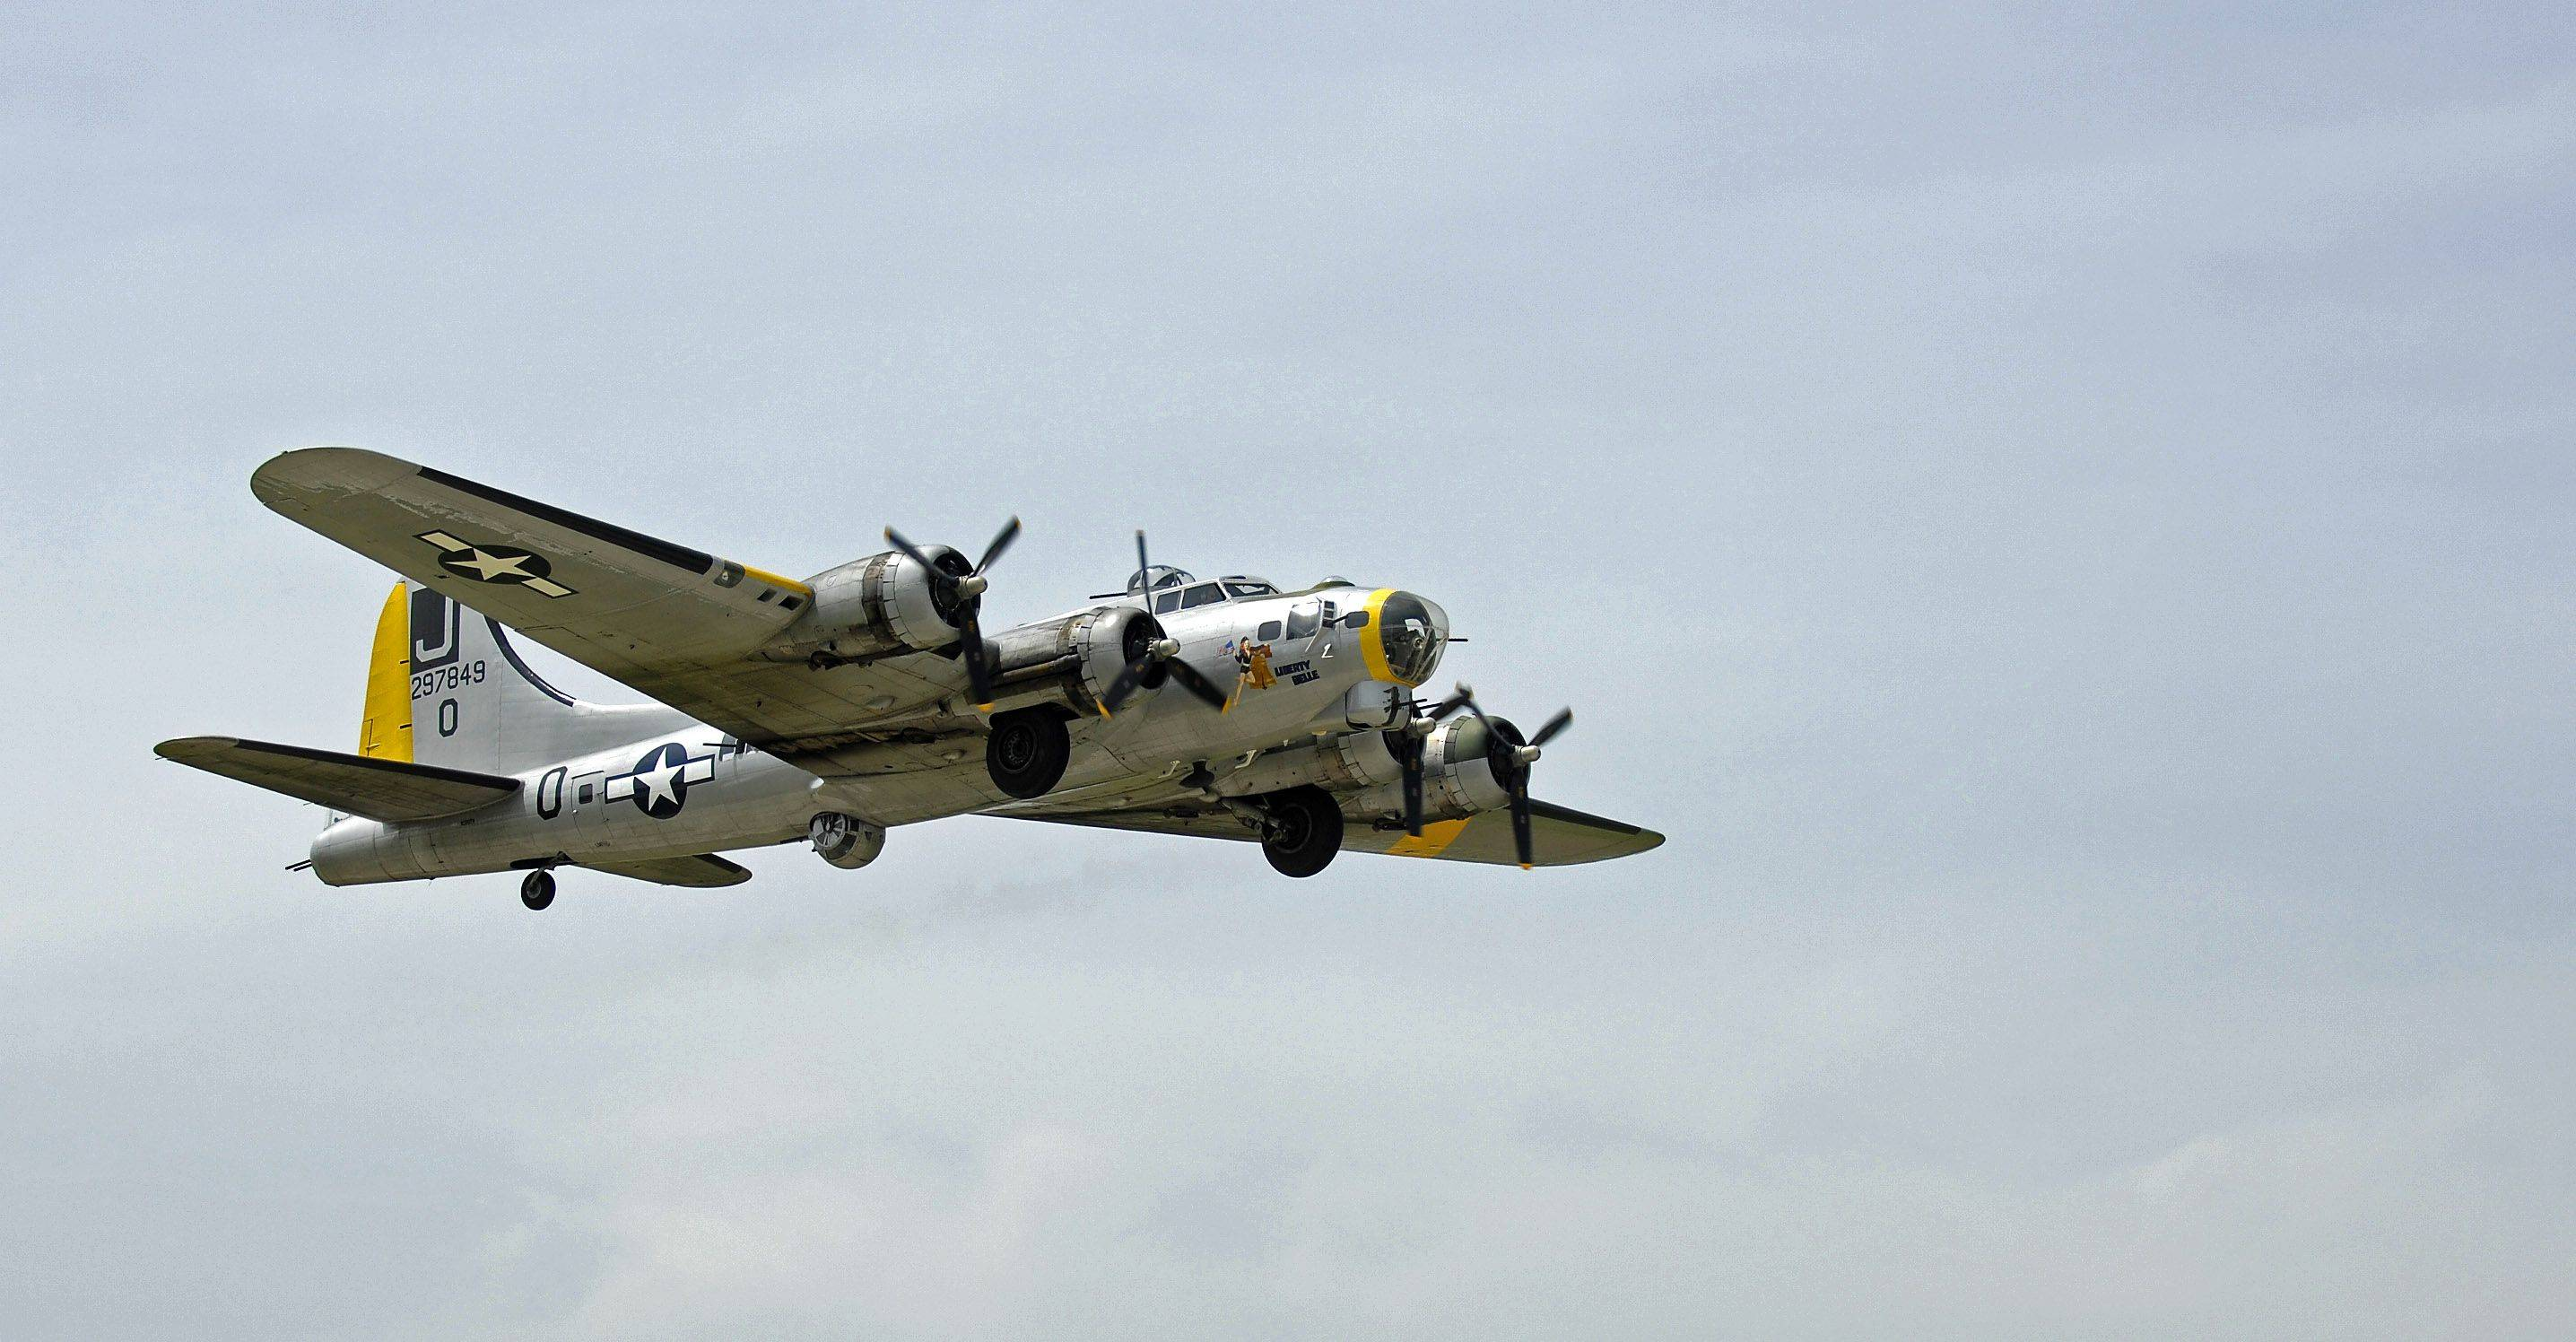 The Liberty Belle, a World War II Boeing B-17 Flying Fortress, goes for a short ride for the media in June 2010.